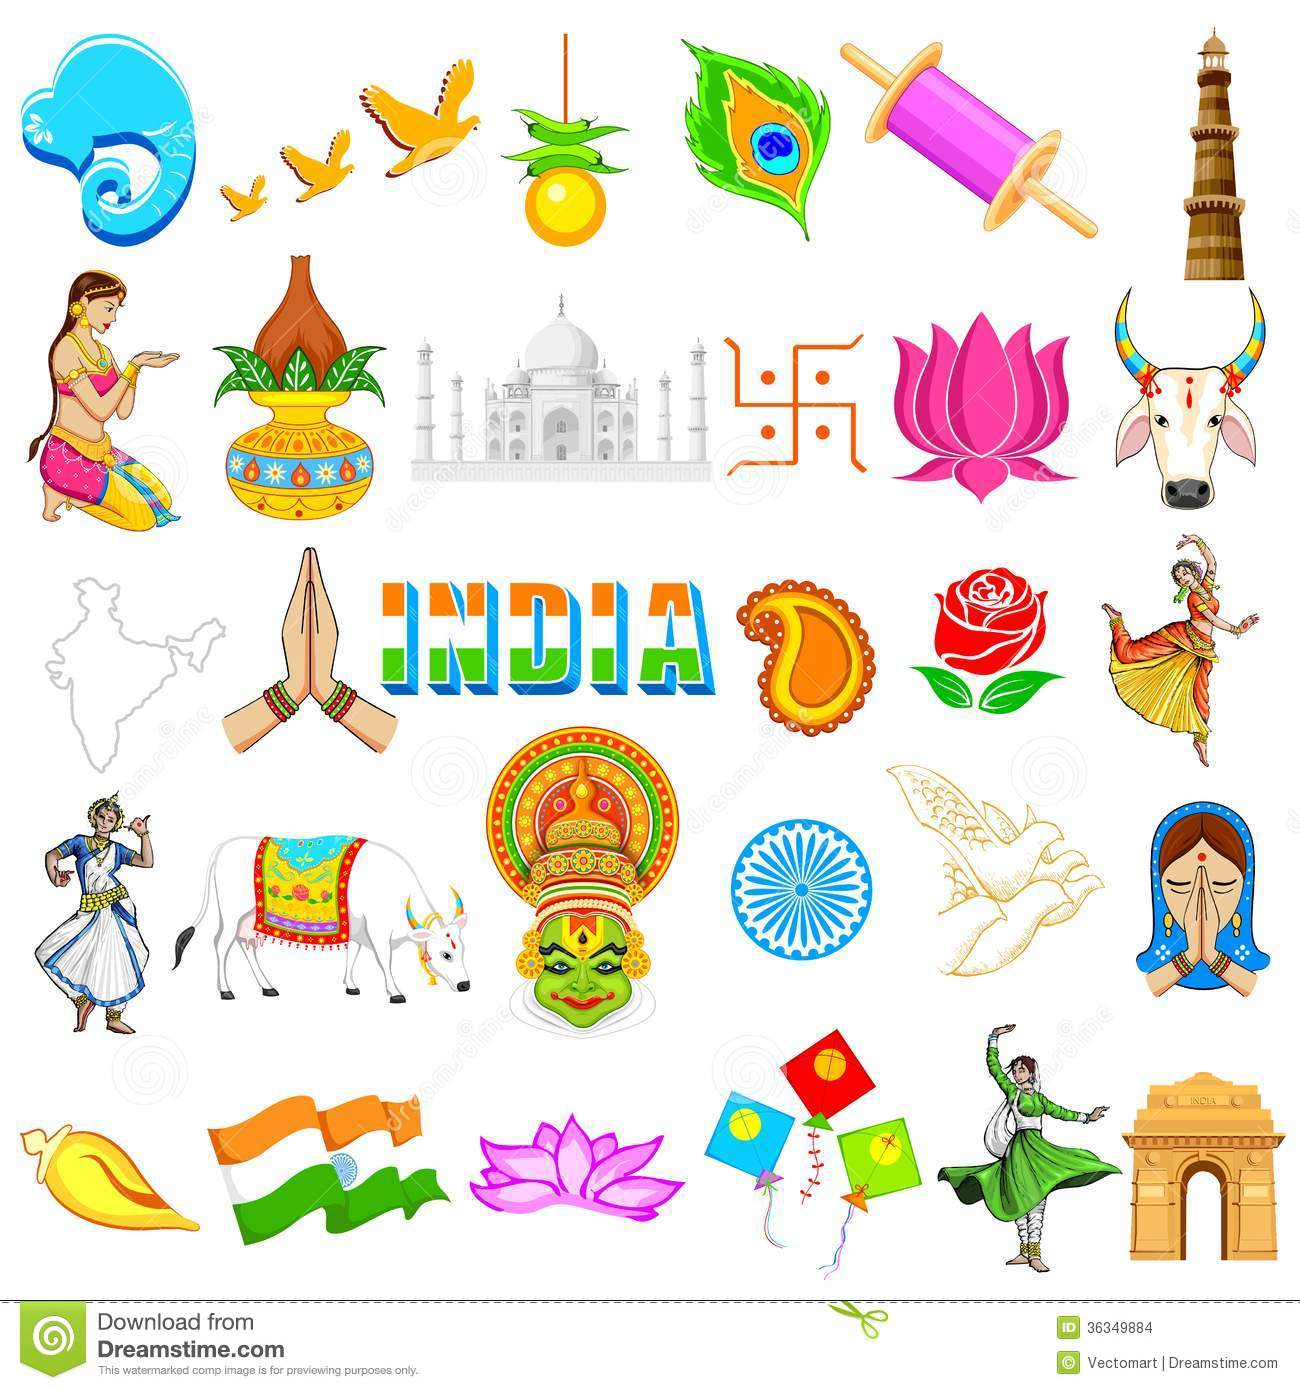 Indian festival clipart 2 » Clipart Station.